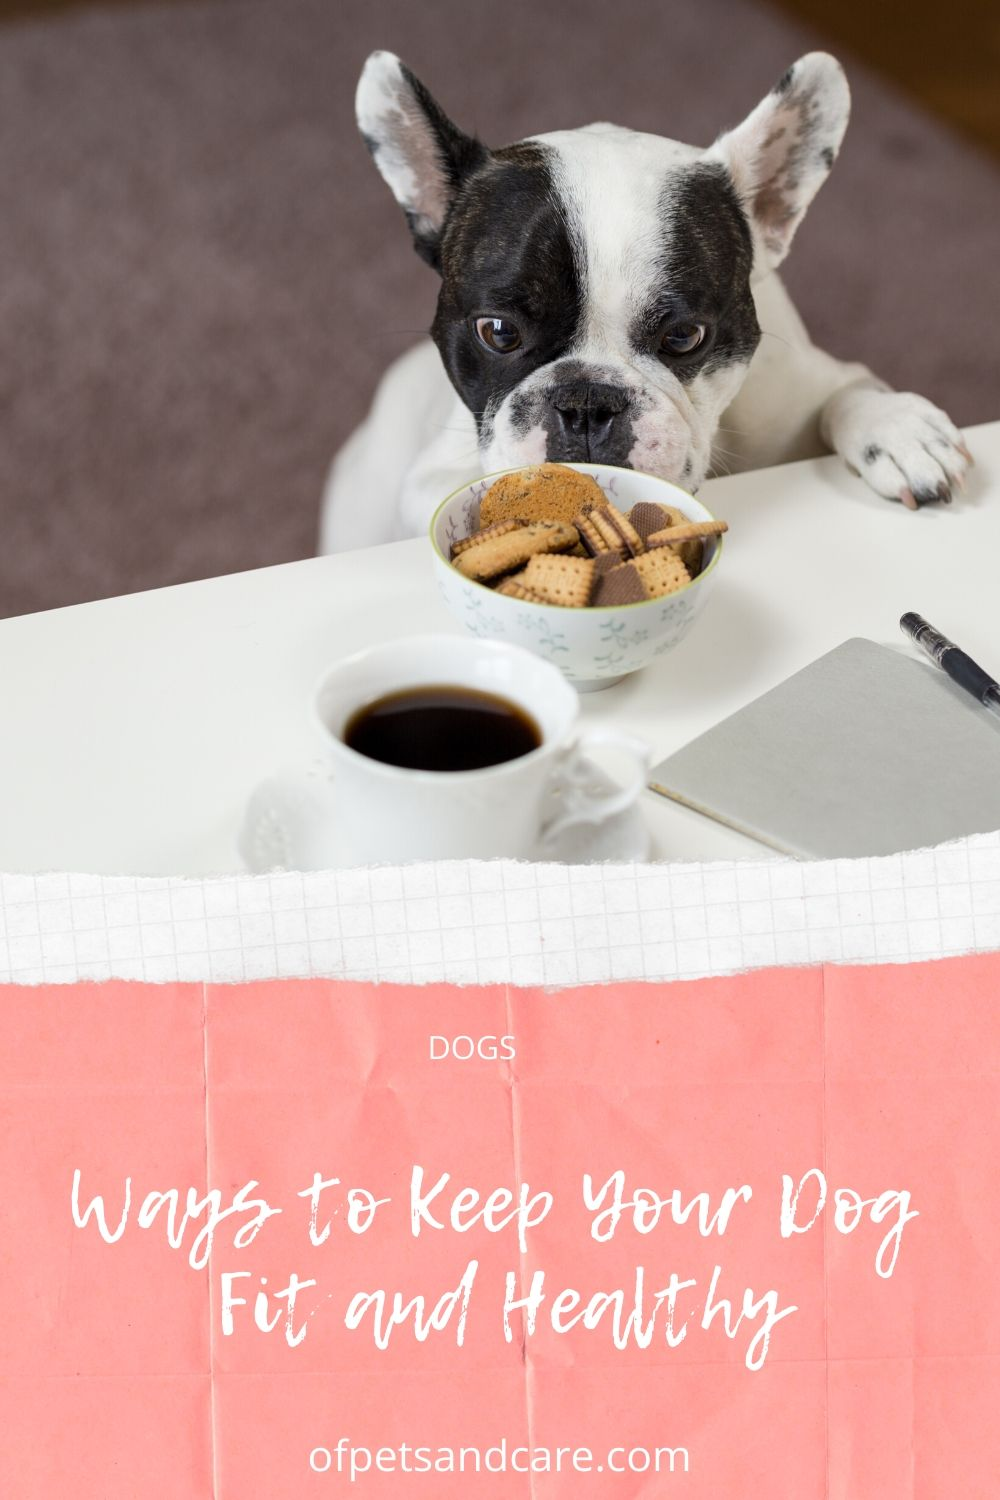 Ways to Keep Your Dog Fit and Healthy